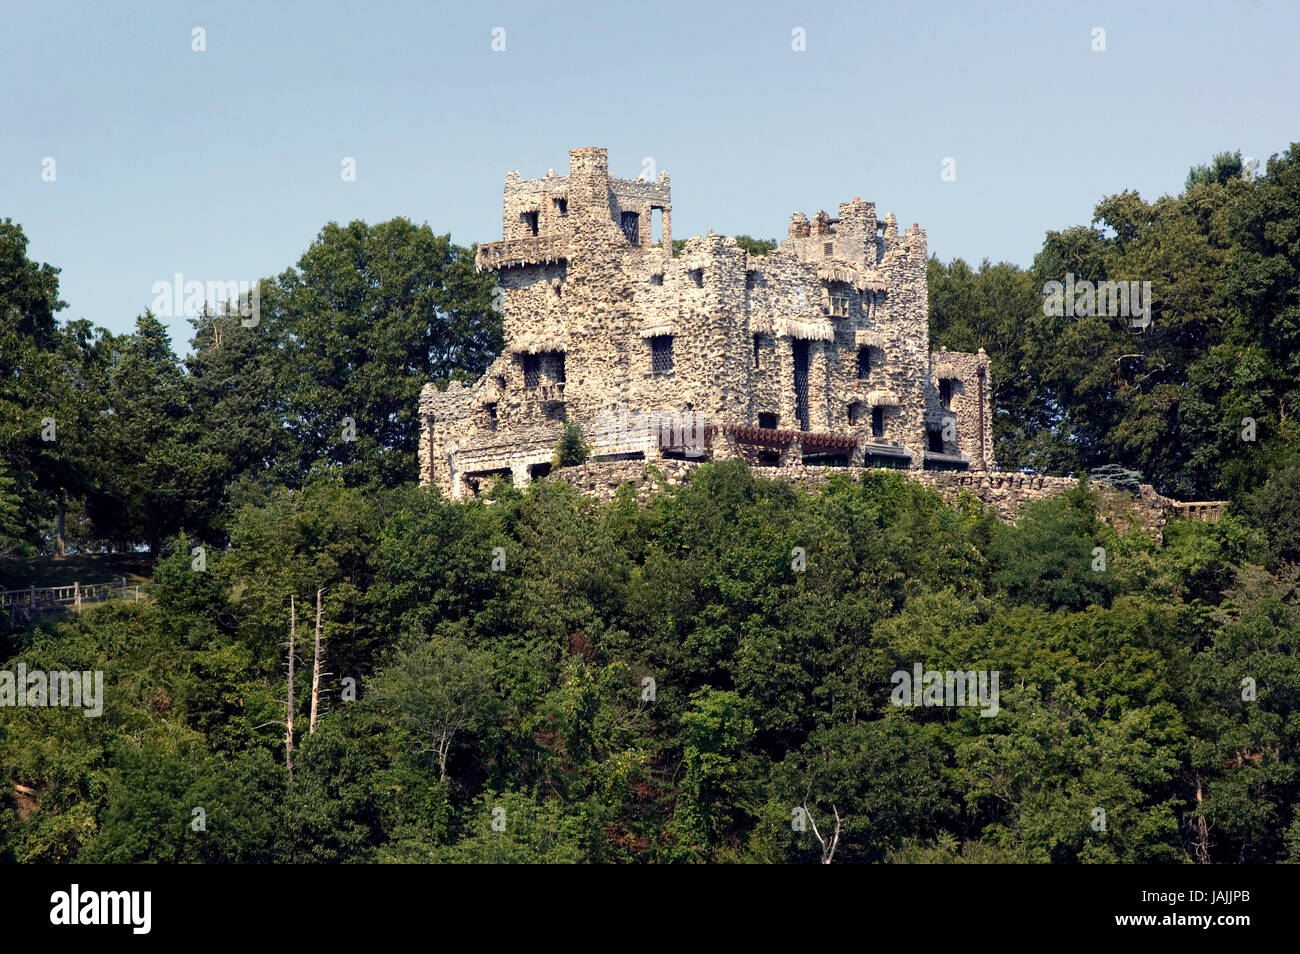 Gillette Castle, East Haddam and Lyme, CT  Gillette Castle State Park is straddling the towns of East Haddam and - Stock Image